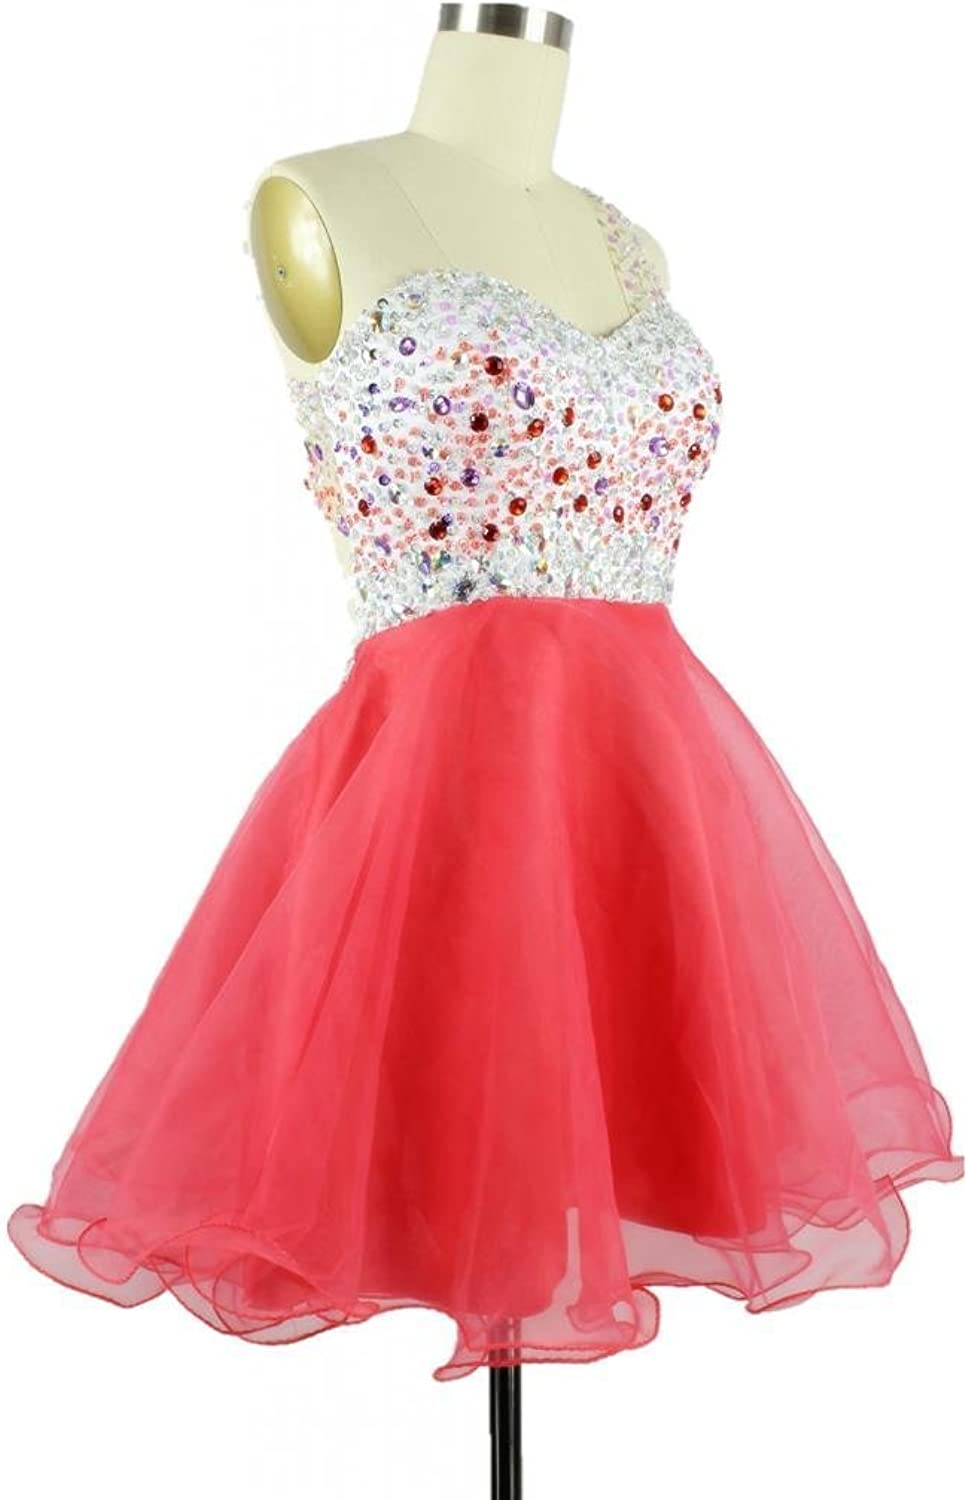 CharmingBridal A Line One Shoulder Beaded Short Prom Dress Mini Cocktail Party Dress